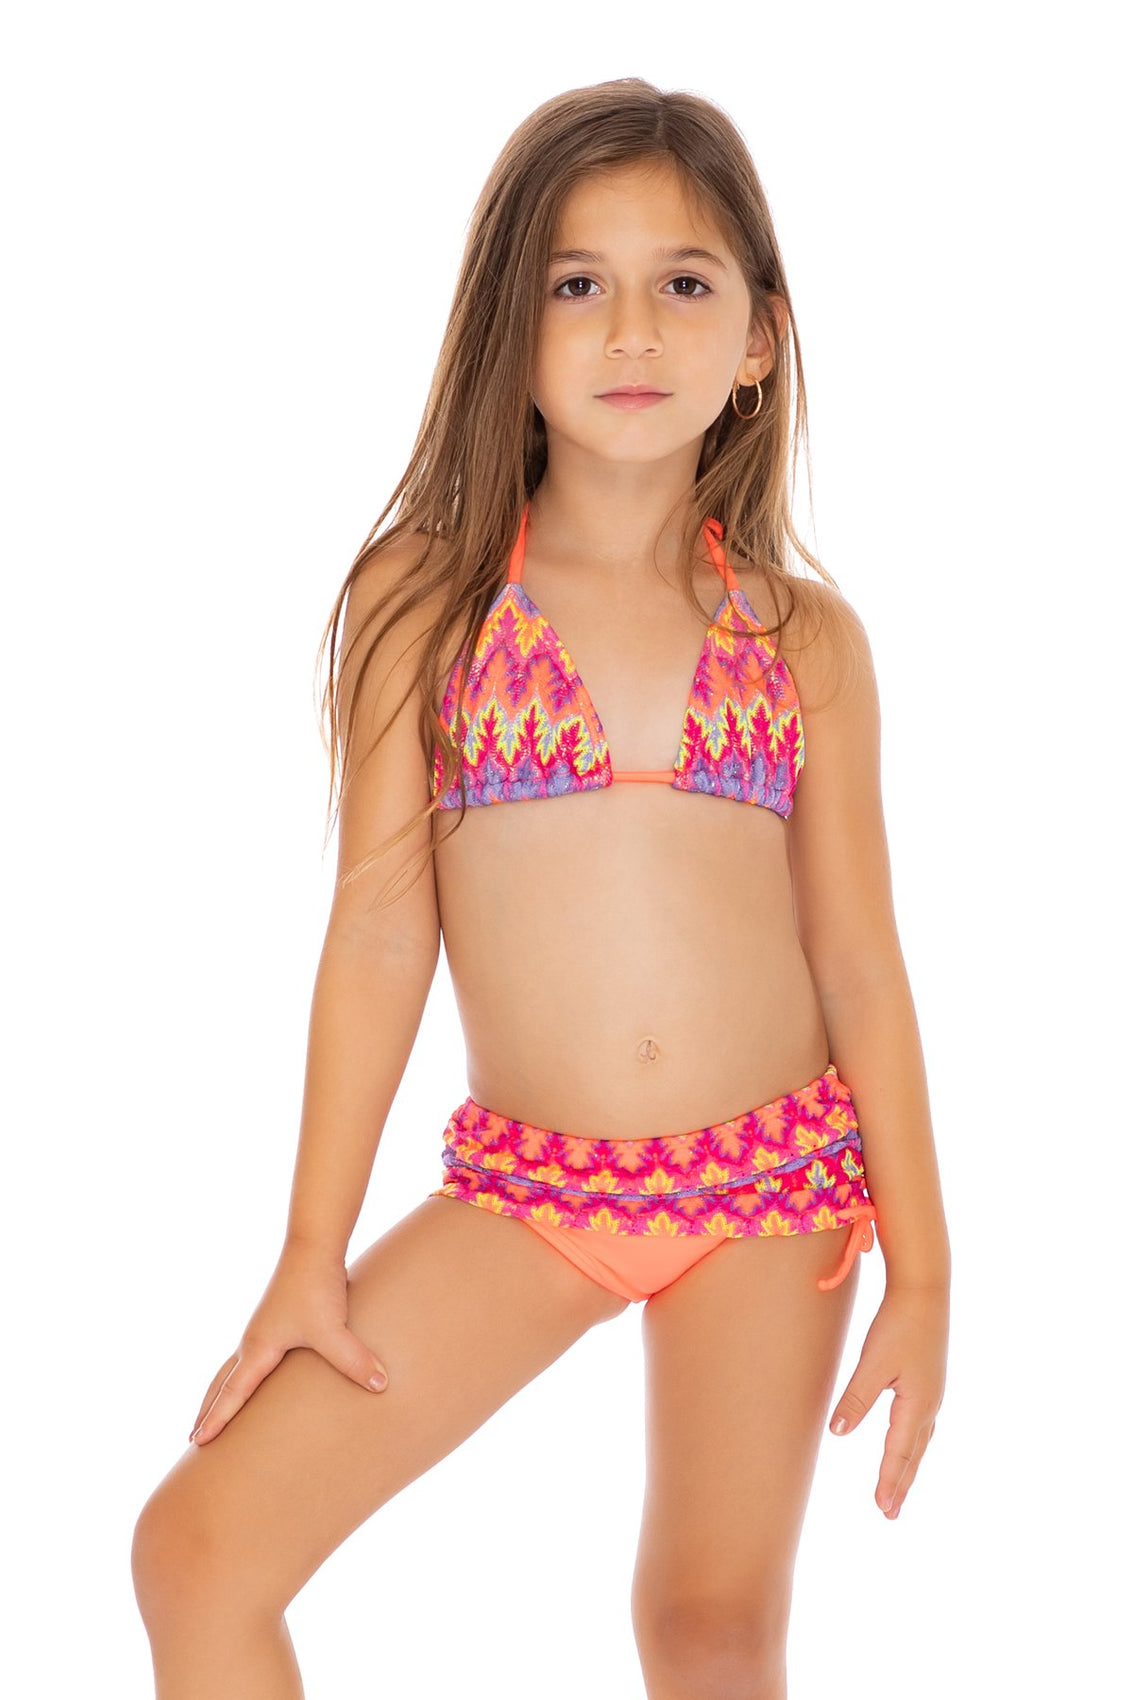 SONG OF THE SEA - Triangle Tops Skirt Bottom Bikini • Multicolor